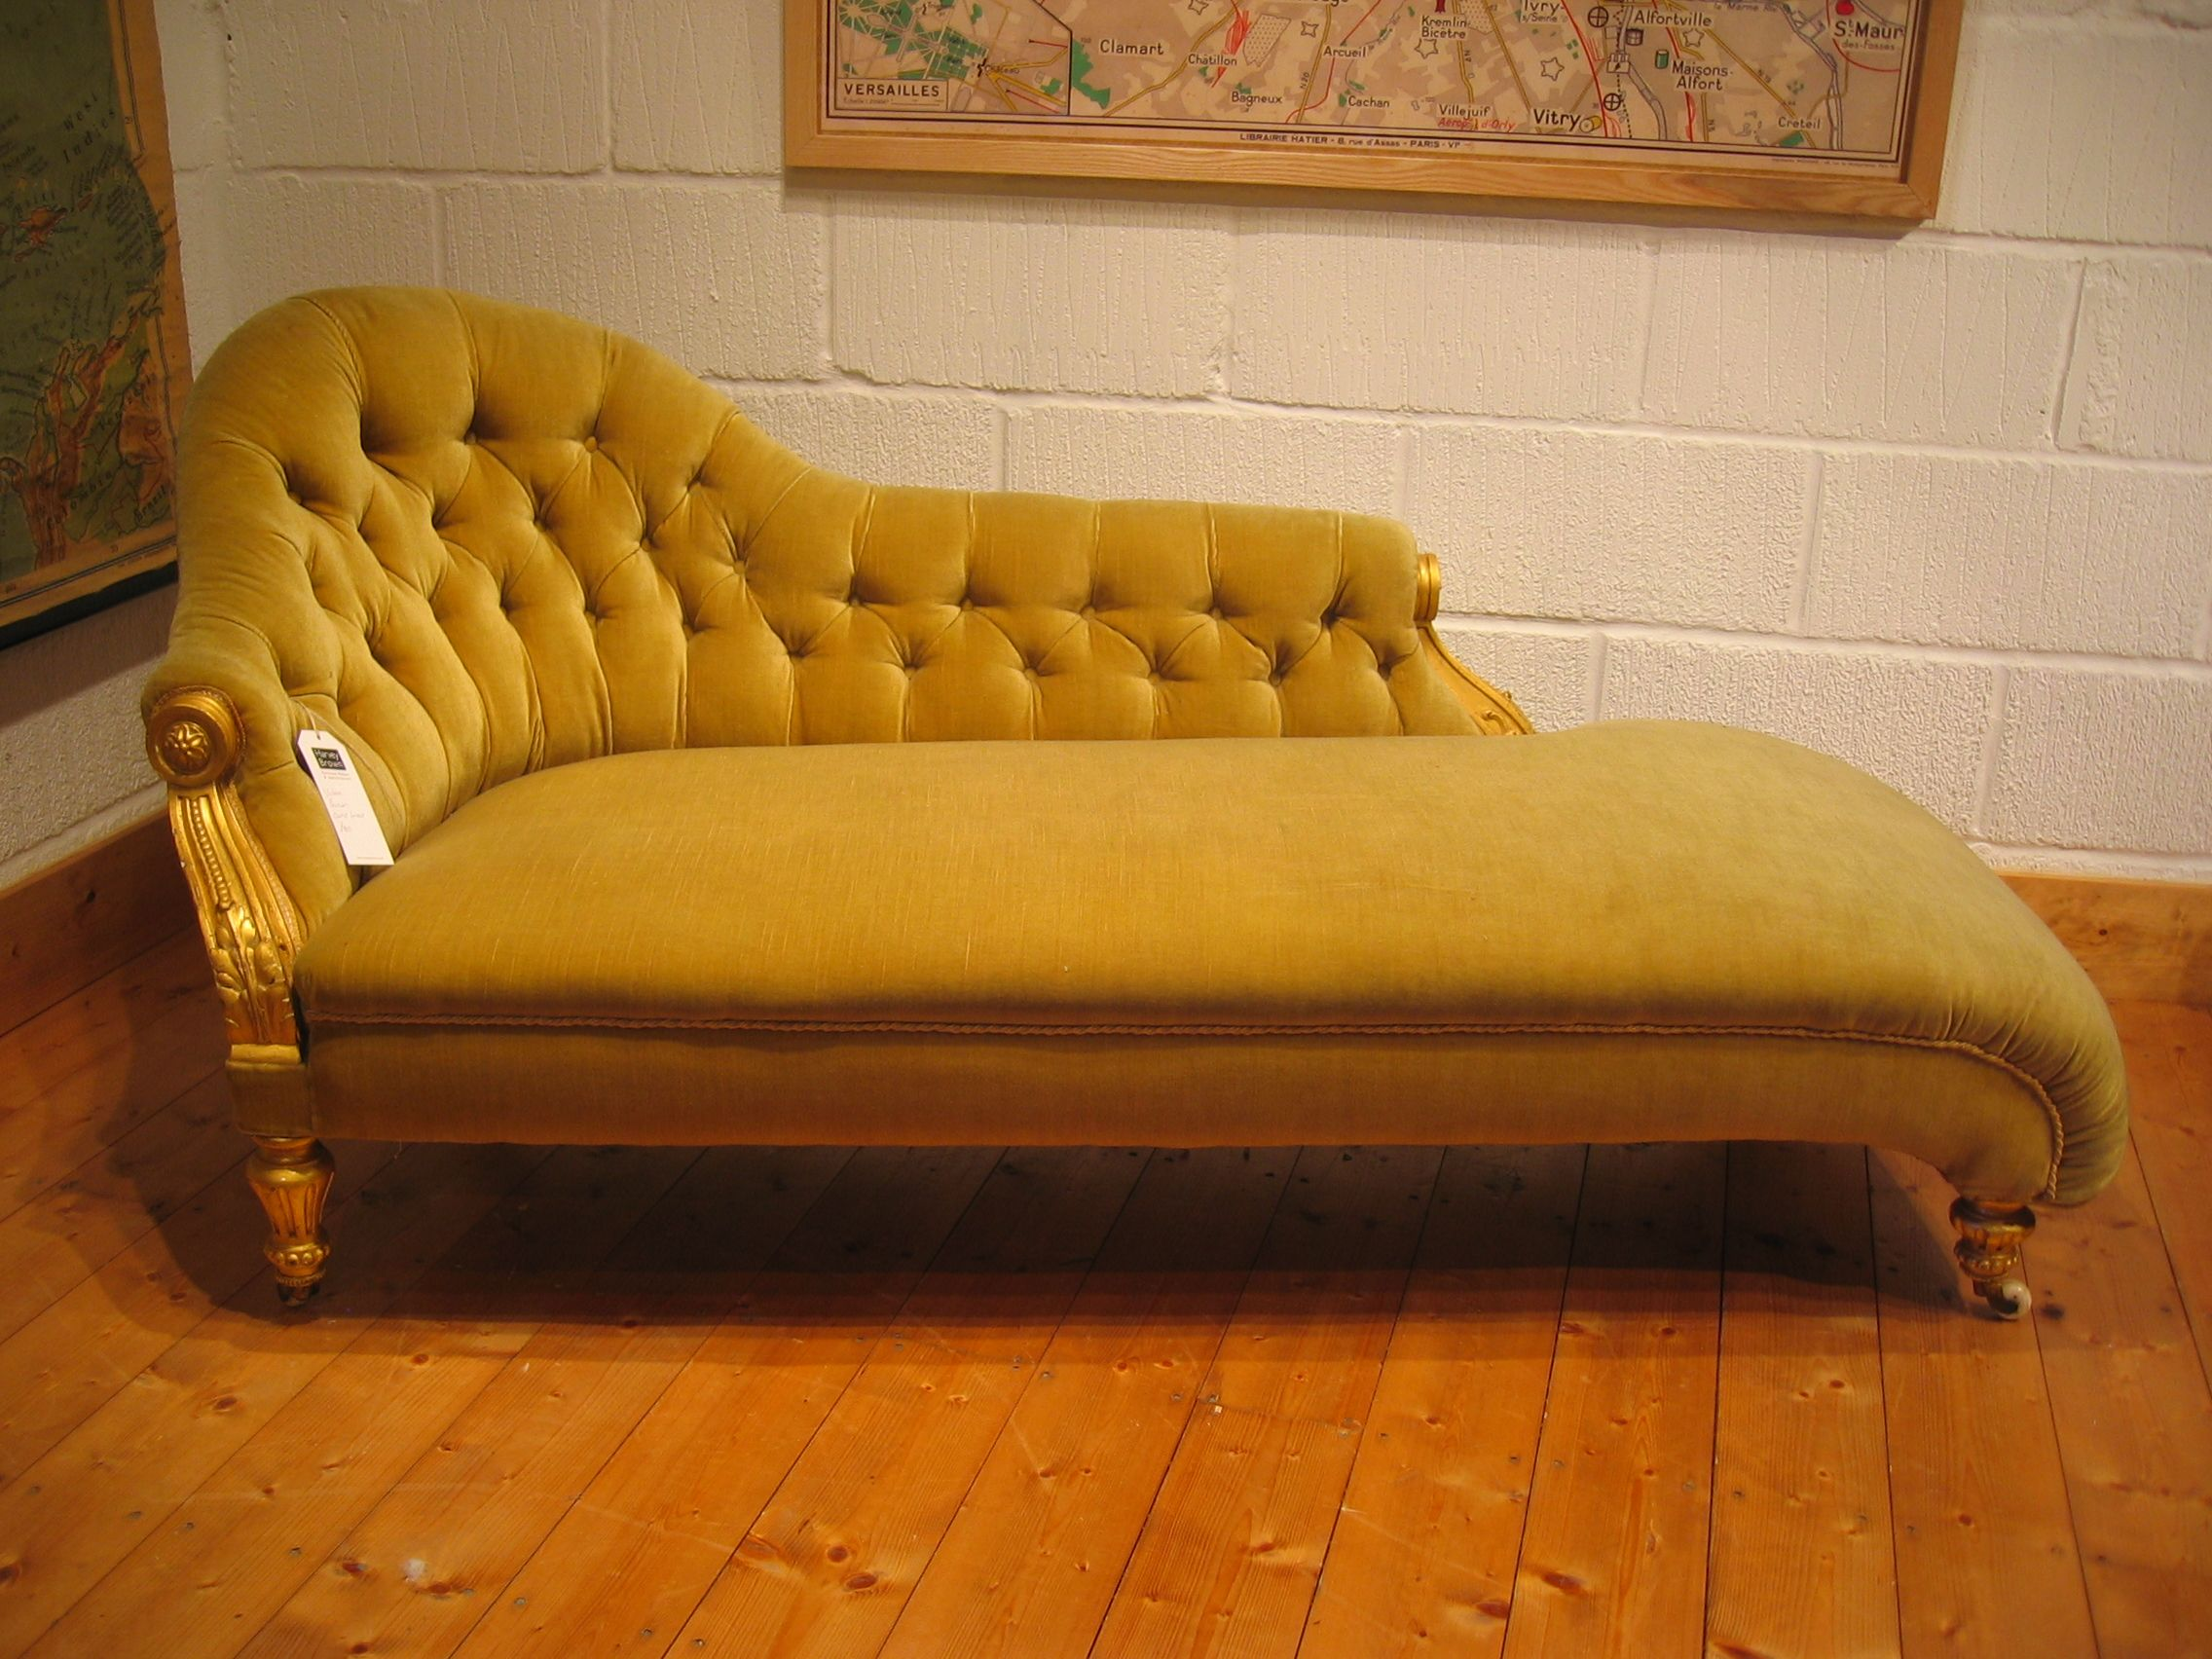 How To Make A Chaise Lounge Chair 6 Pictures